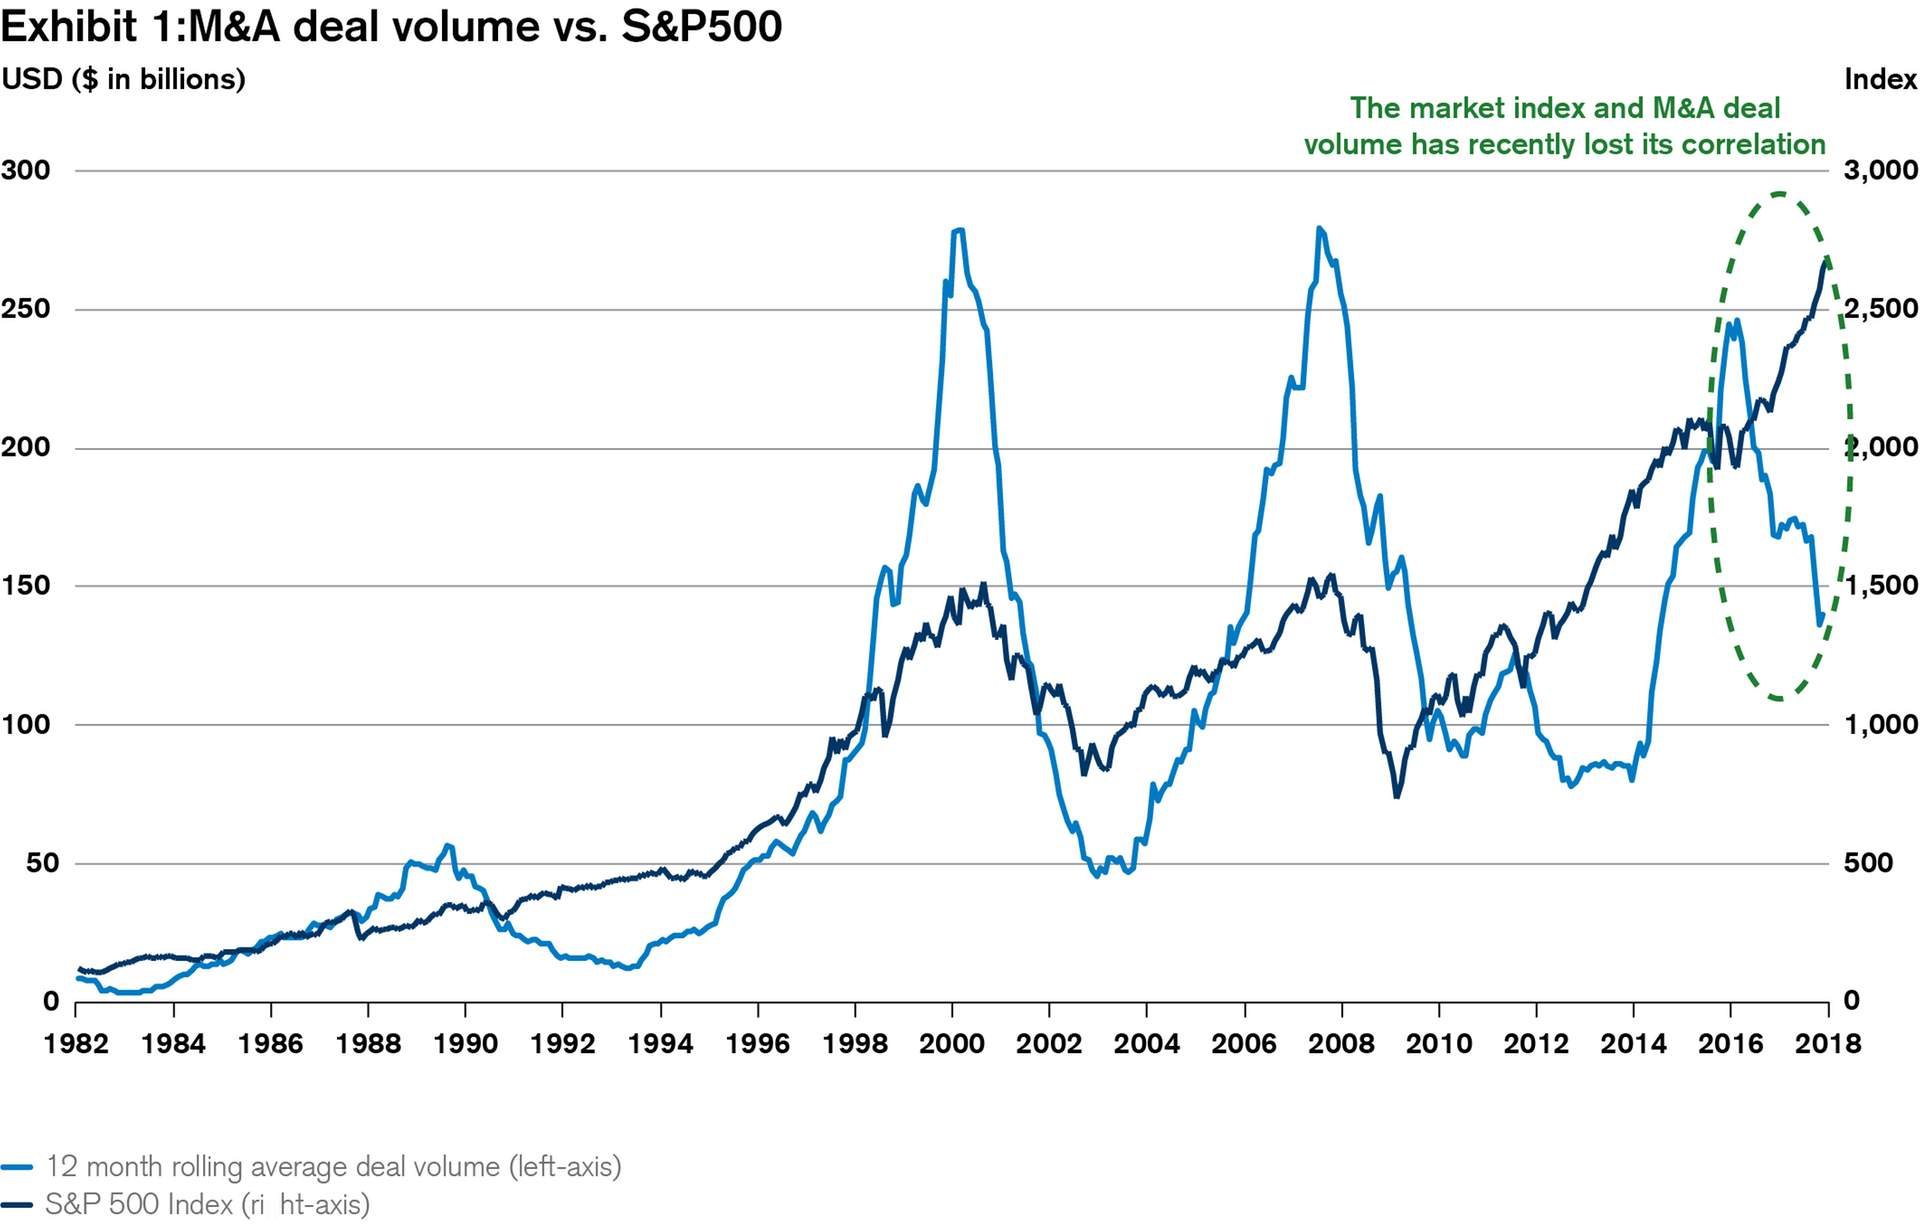 M&A deal volume vs. S&P500